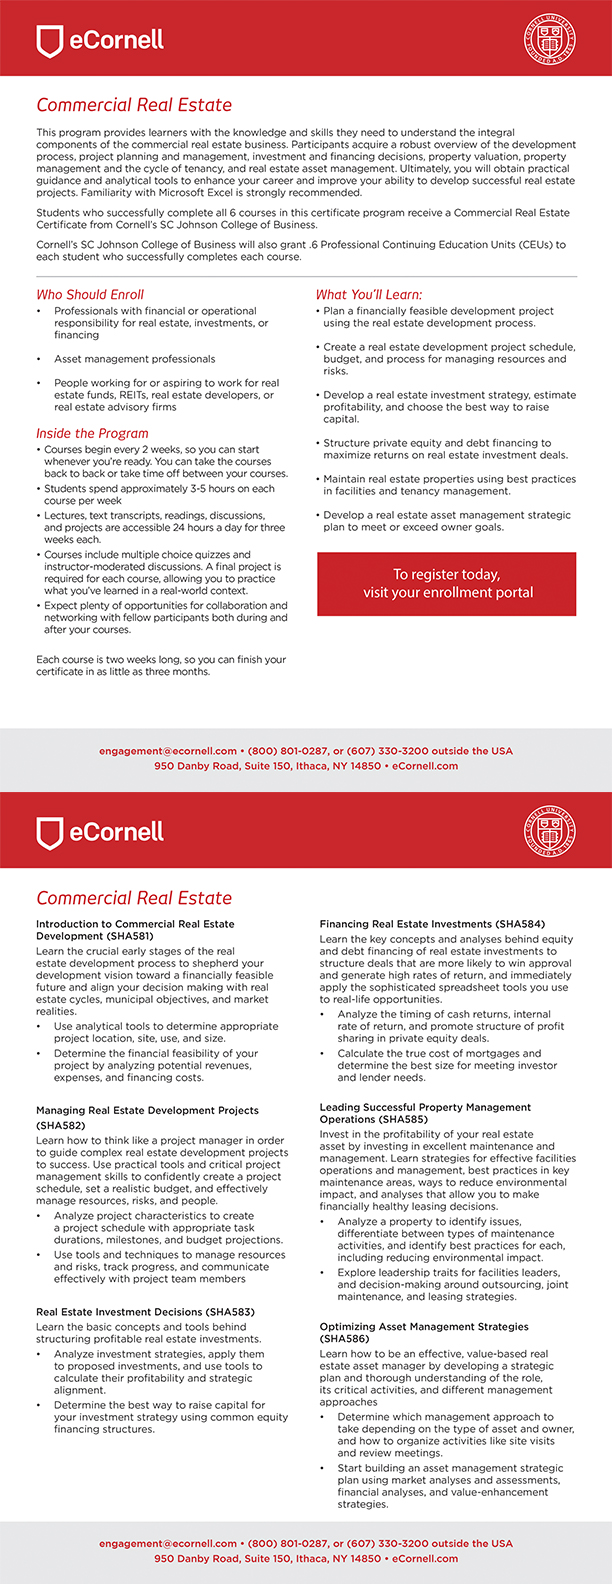 Commercial Real Estate Flyer for Corporations